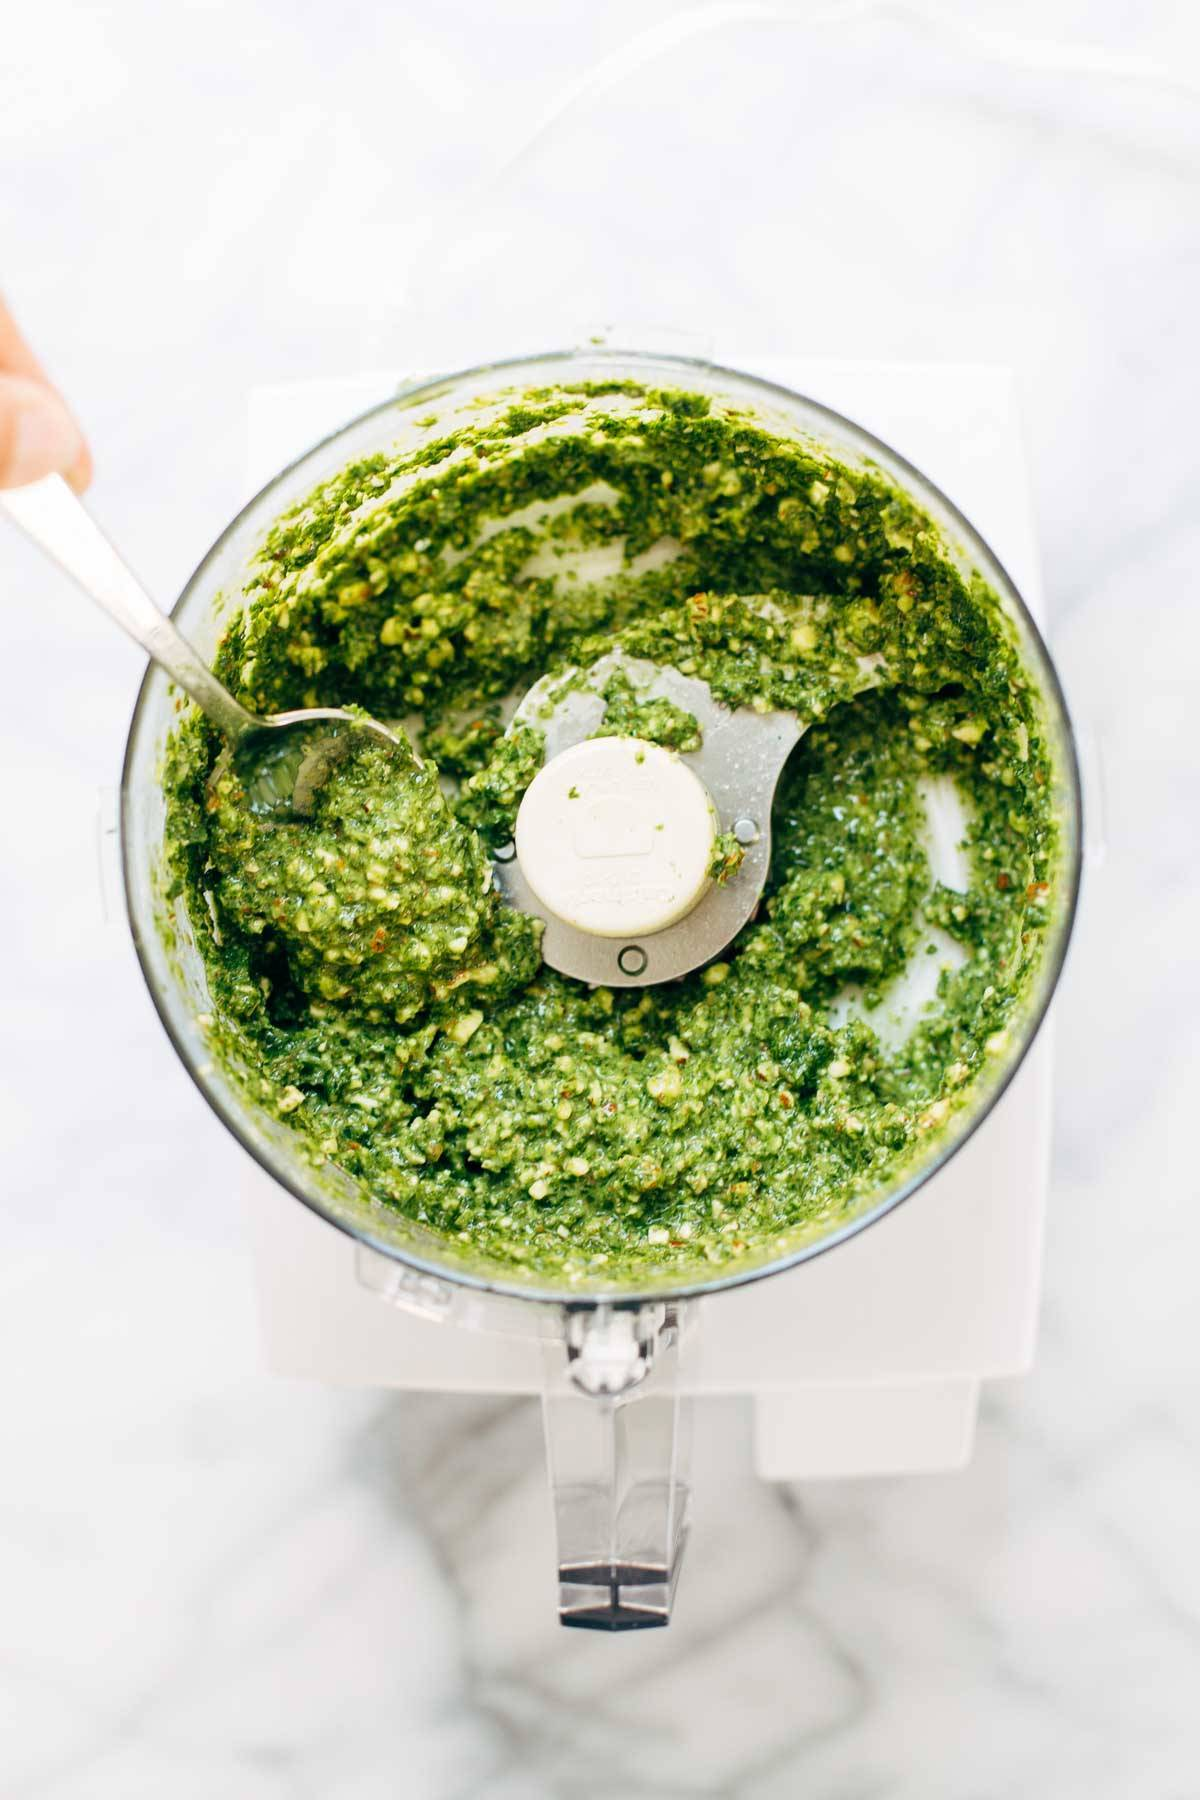 Kale pesto in a food processor with a spoon.